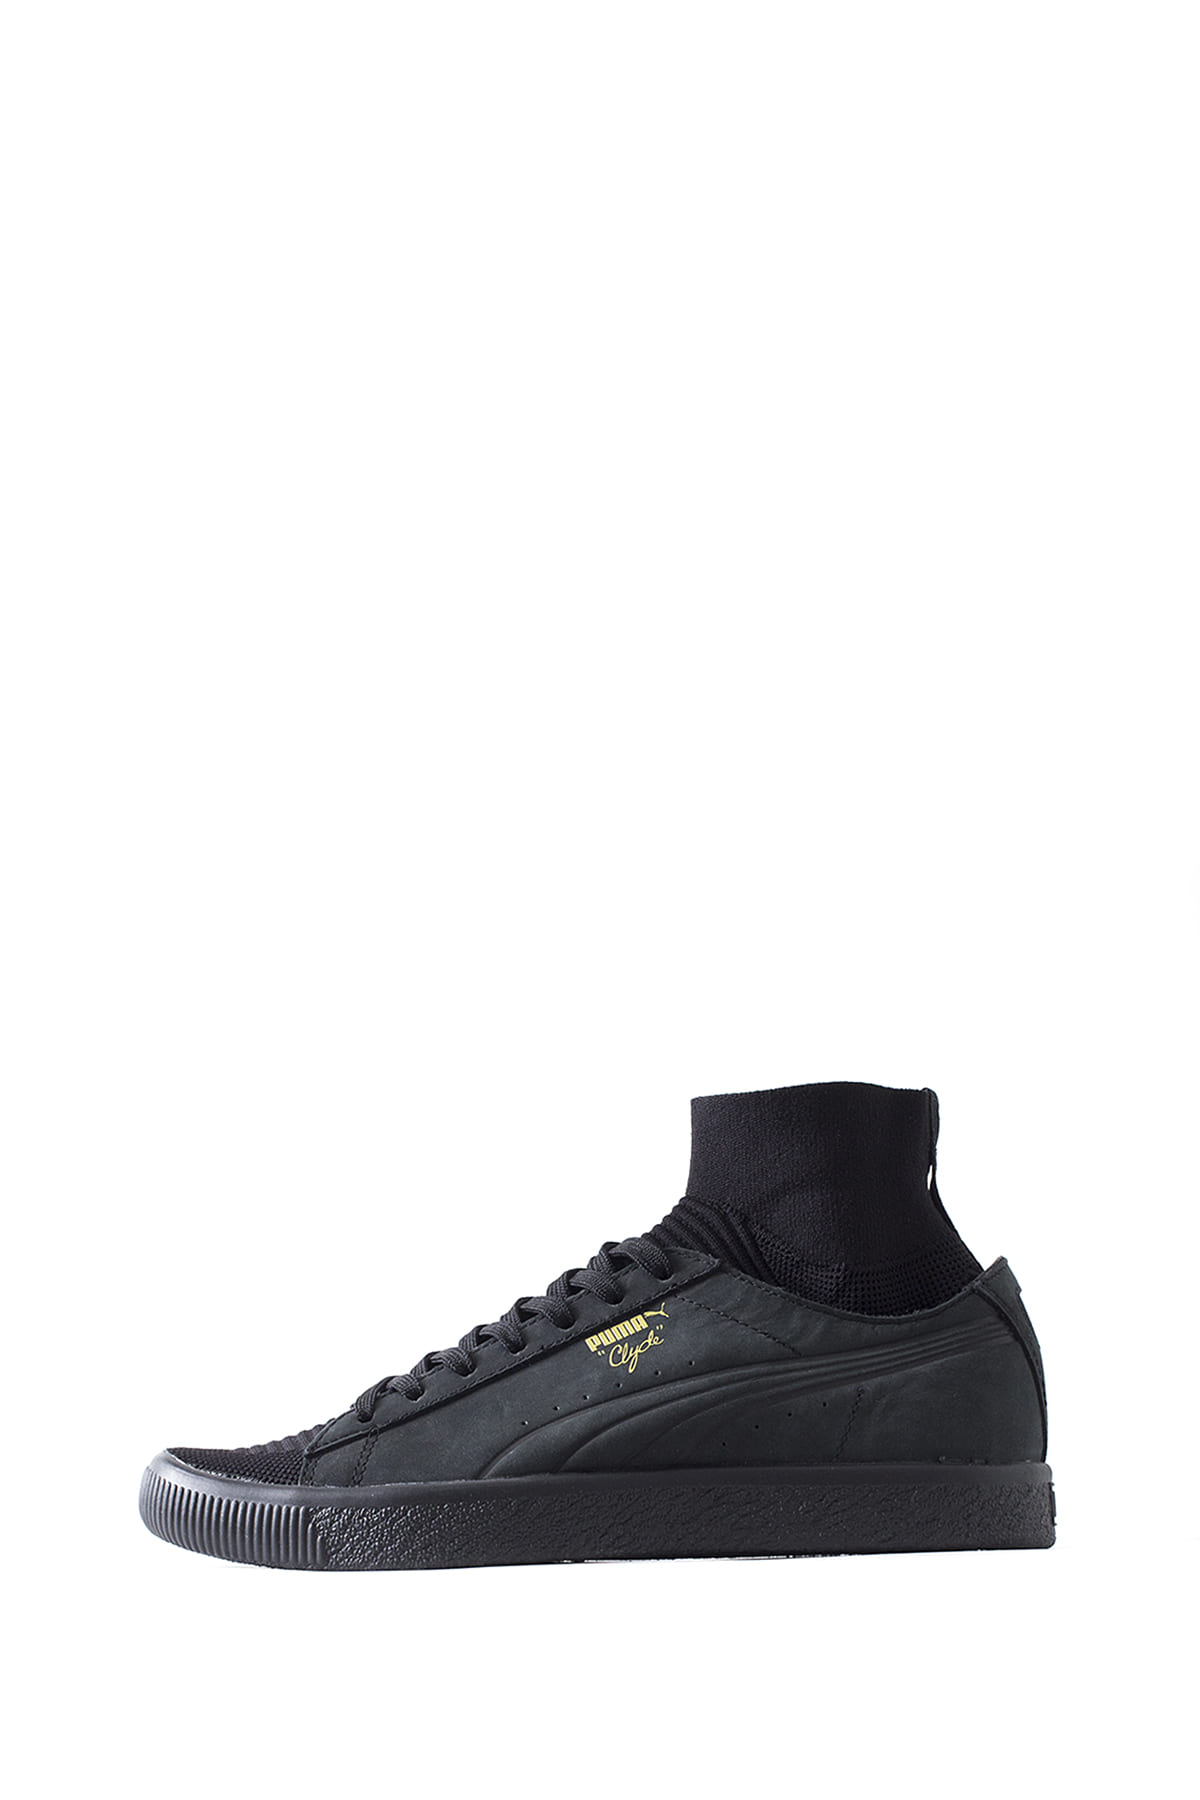 PUMA : Cylde Sock Select (Black)